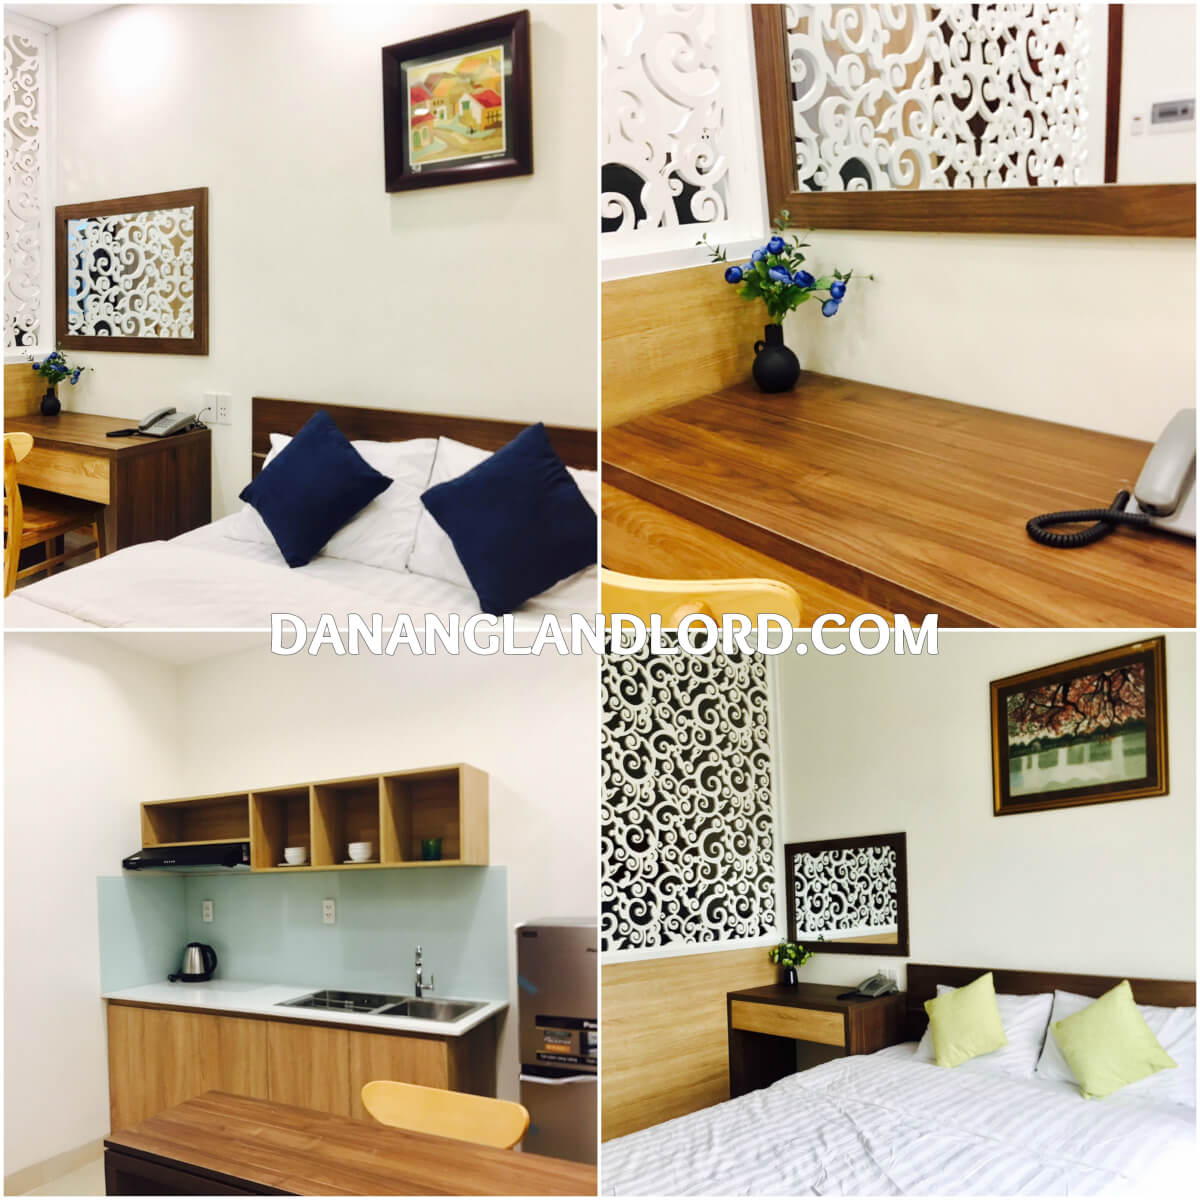 Studio 1 bedroom apartment for rent pham van dong beach for Studio 1 bedroom apartments rent